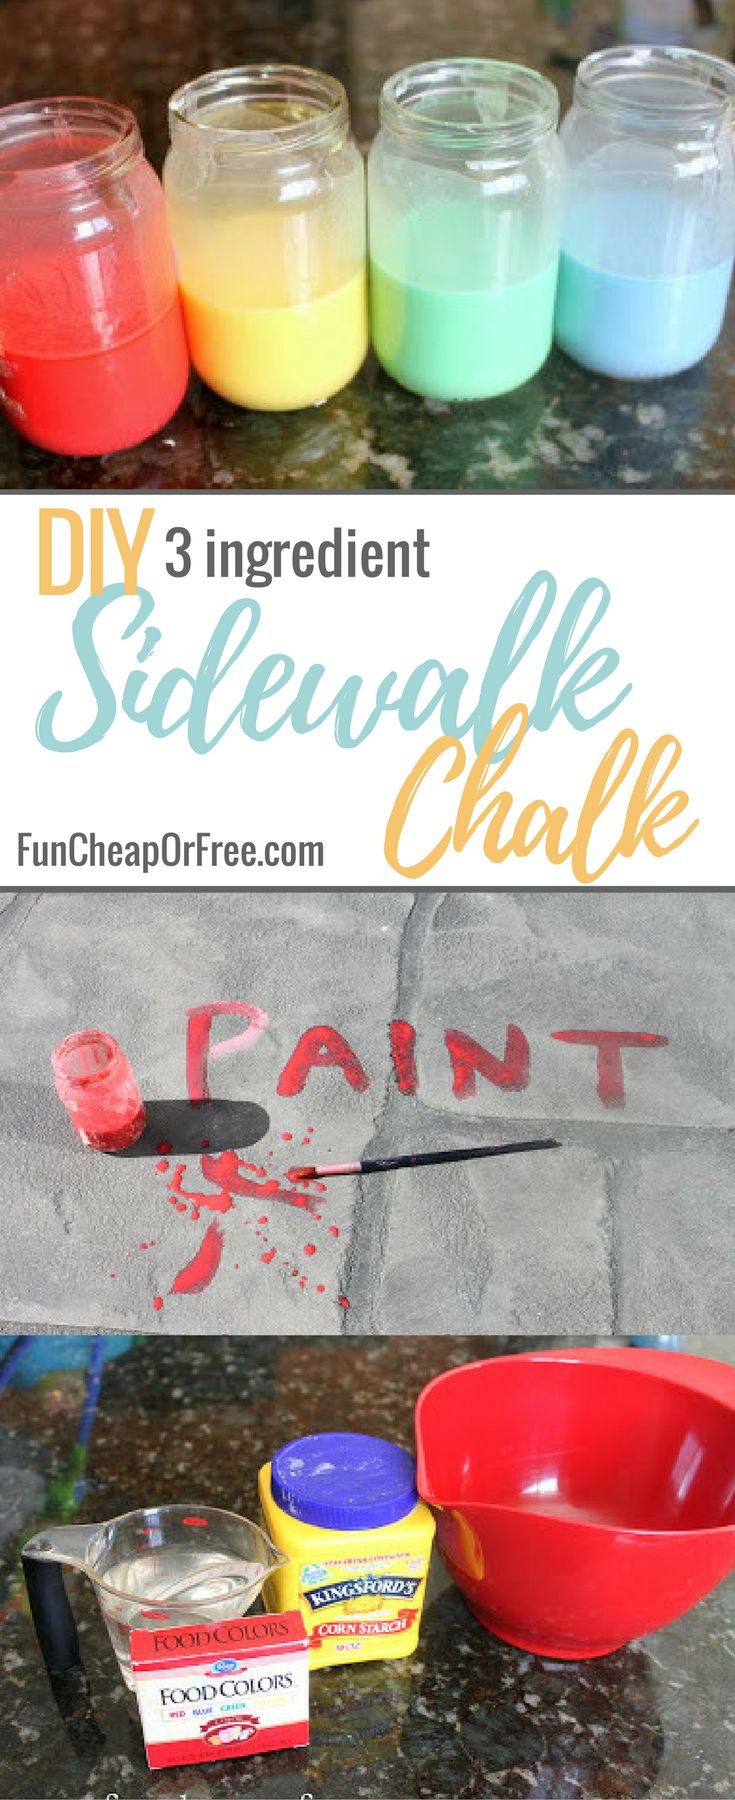 DIY 3 Ingredient Sidewalk Chalk Paint | My favorite 3-ingredient homemade sidewalk chalk paint recipe to kill all those summer boredom blues! FunCheapOrFree.com